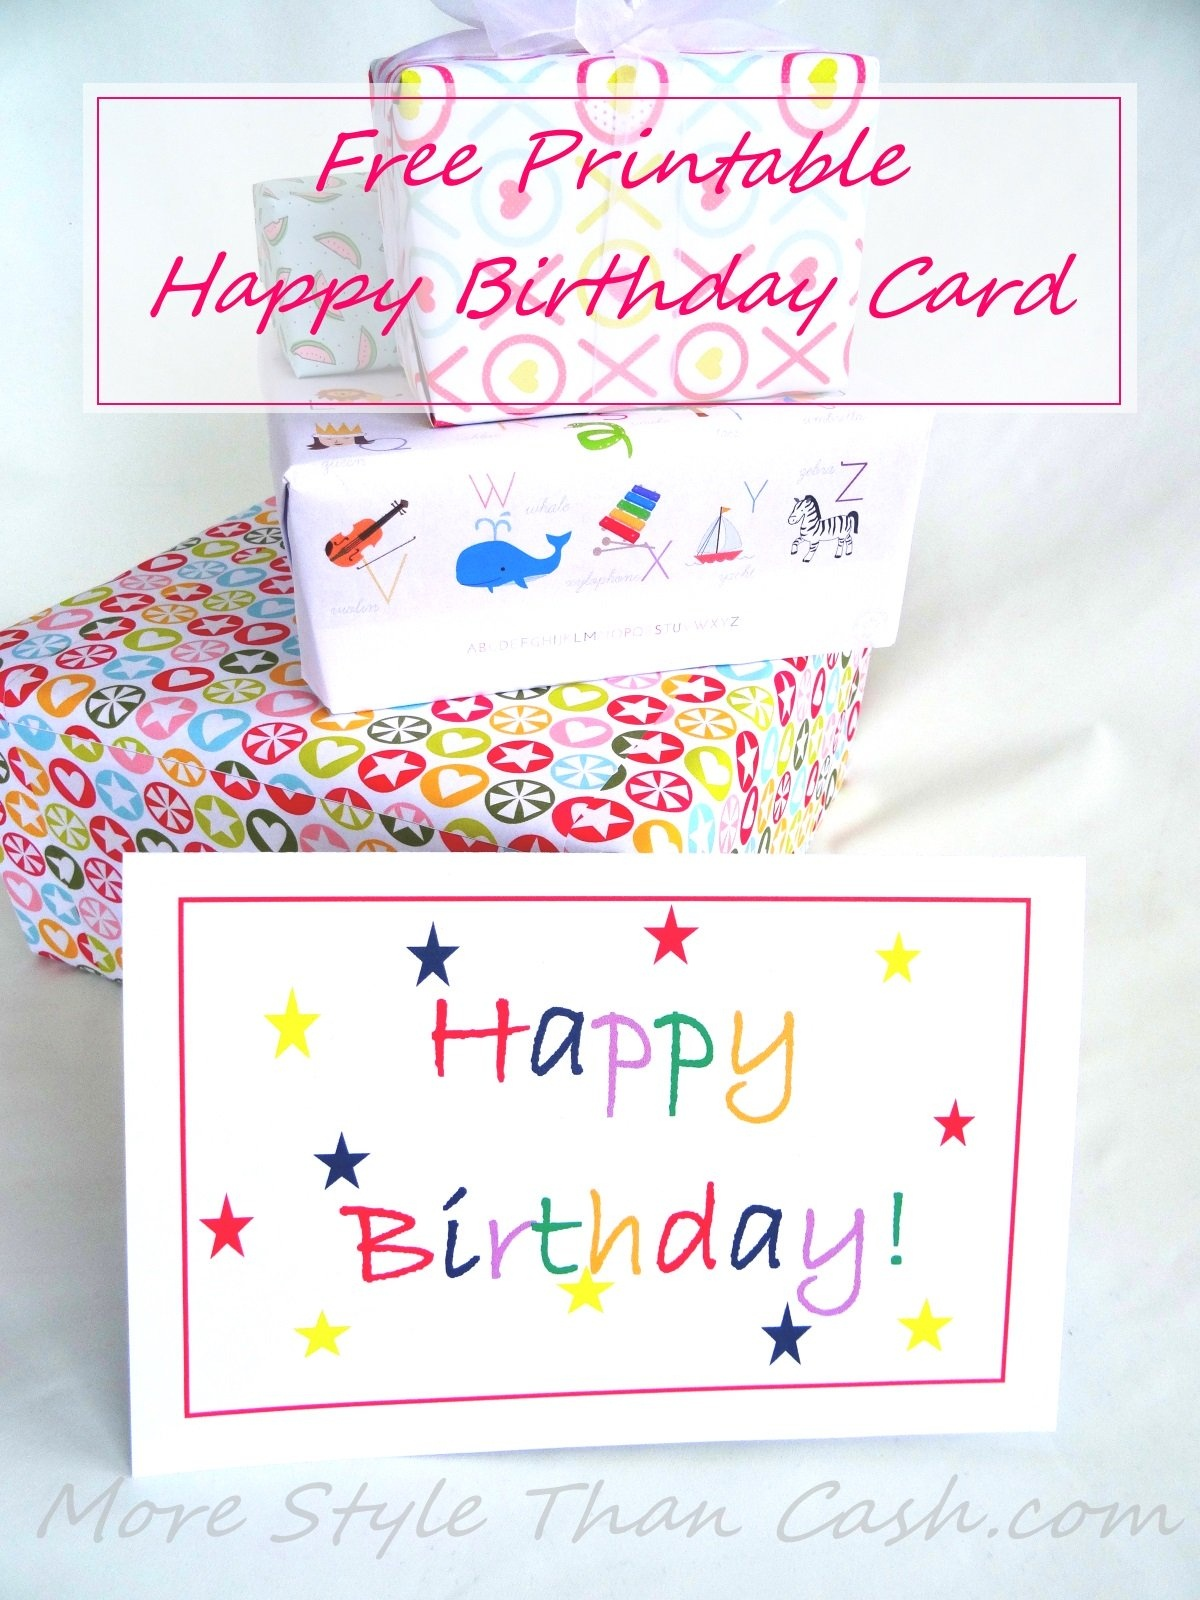 Free Printable Birthday Card - Free Printable Happy Birthday Cards